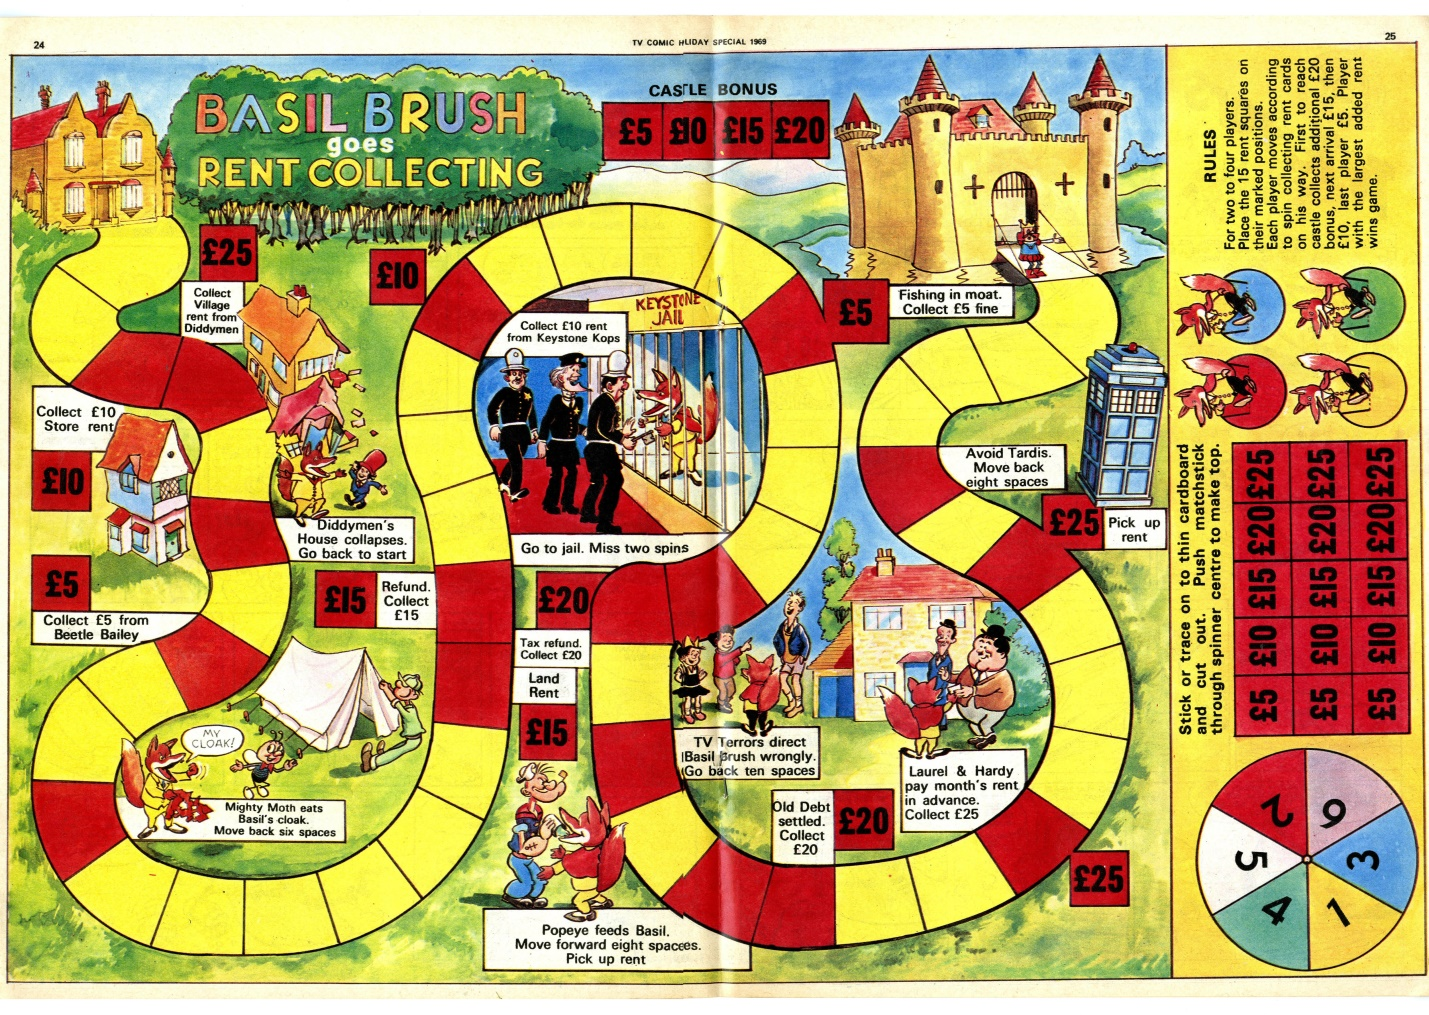 Counter Game in the TV Comic Holiday Special 1969